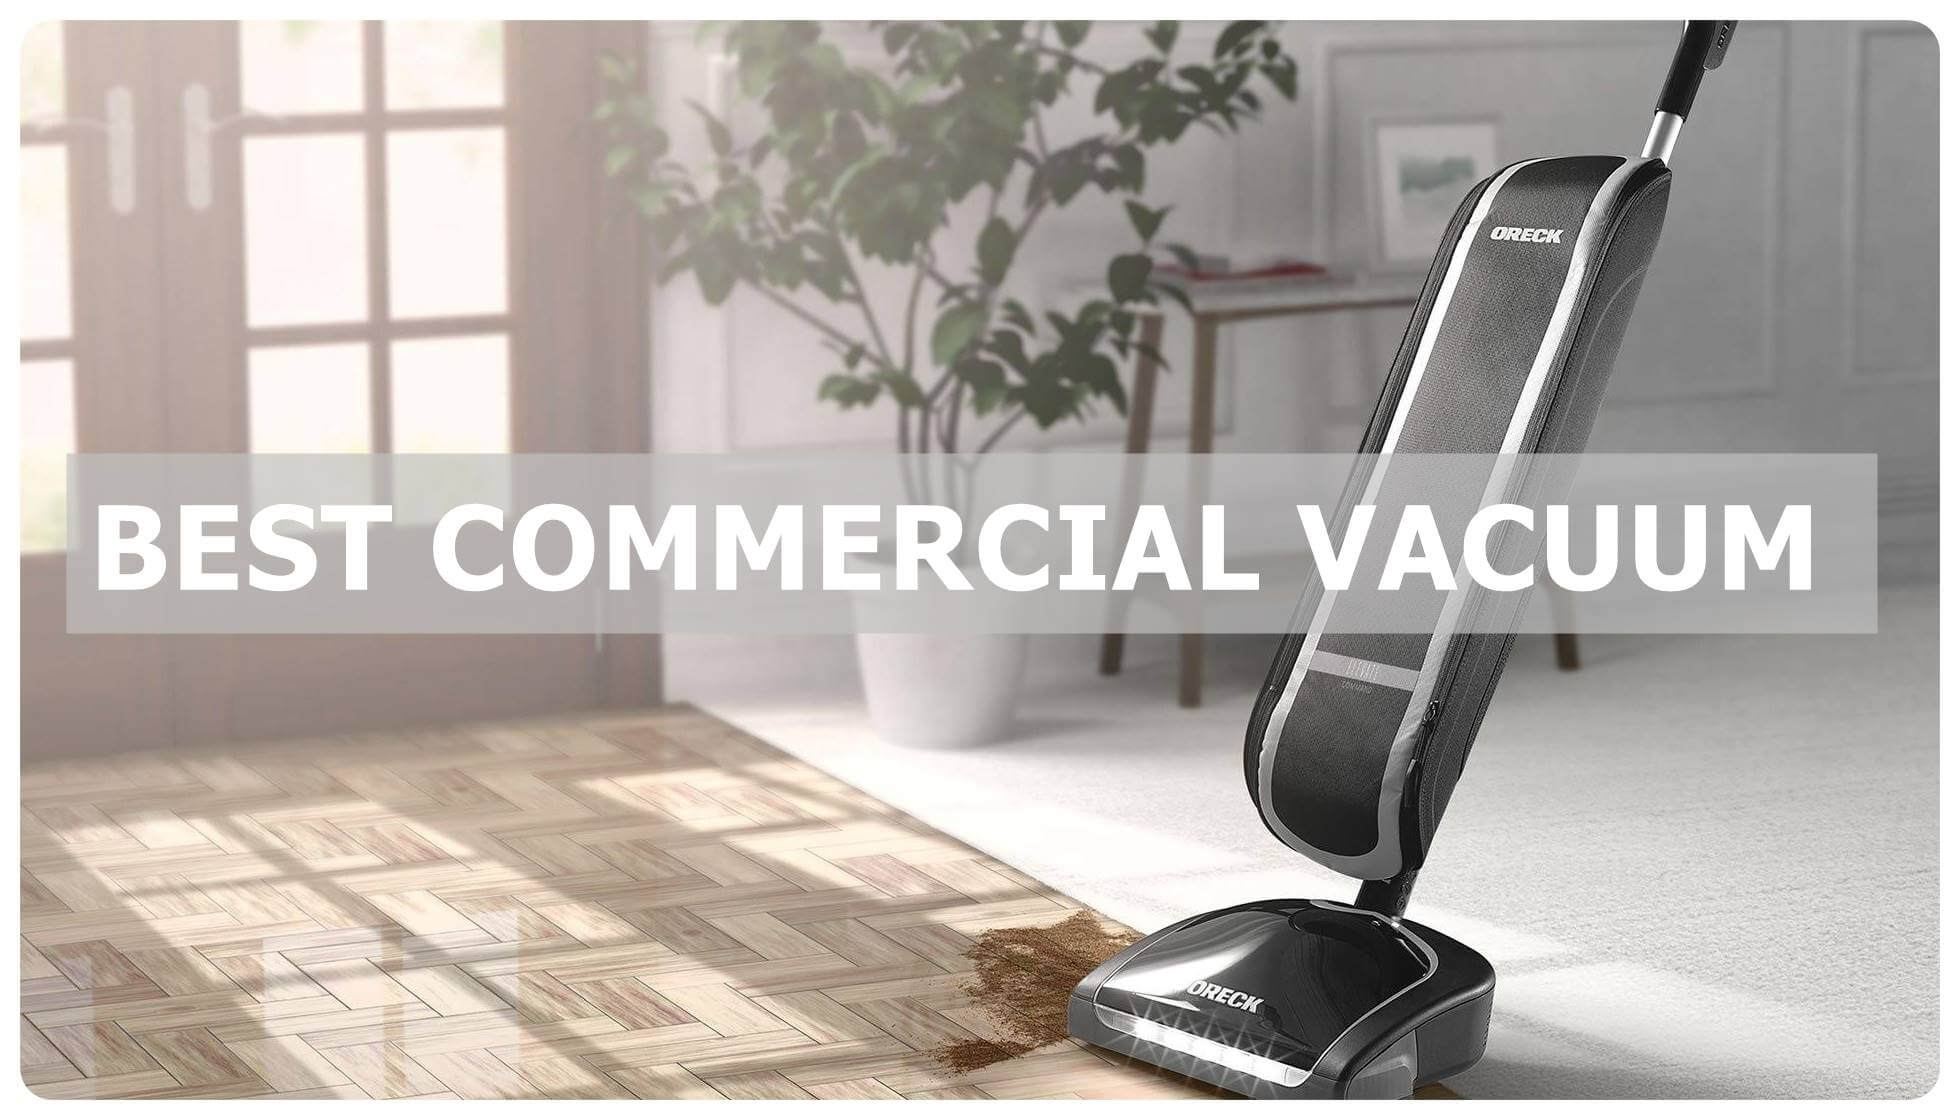 Best commercial vacuum reviews 2019 - Buying tips plus detail reviews